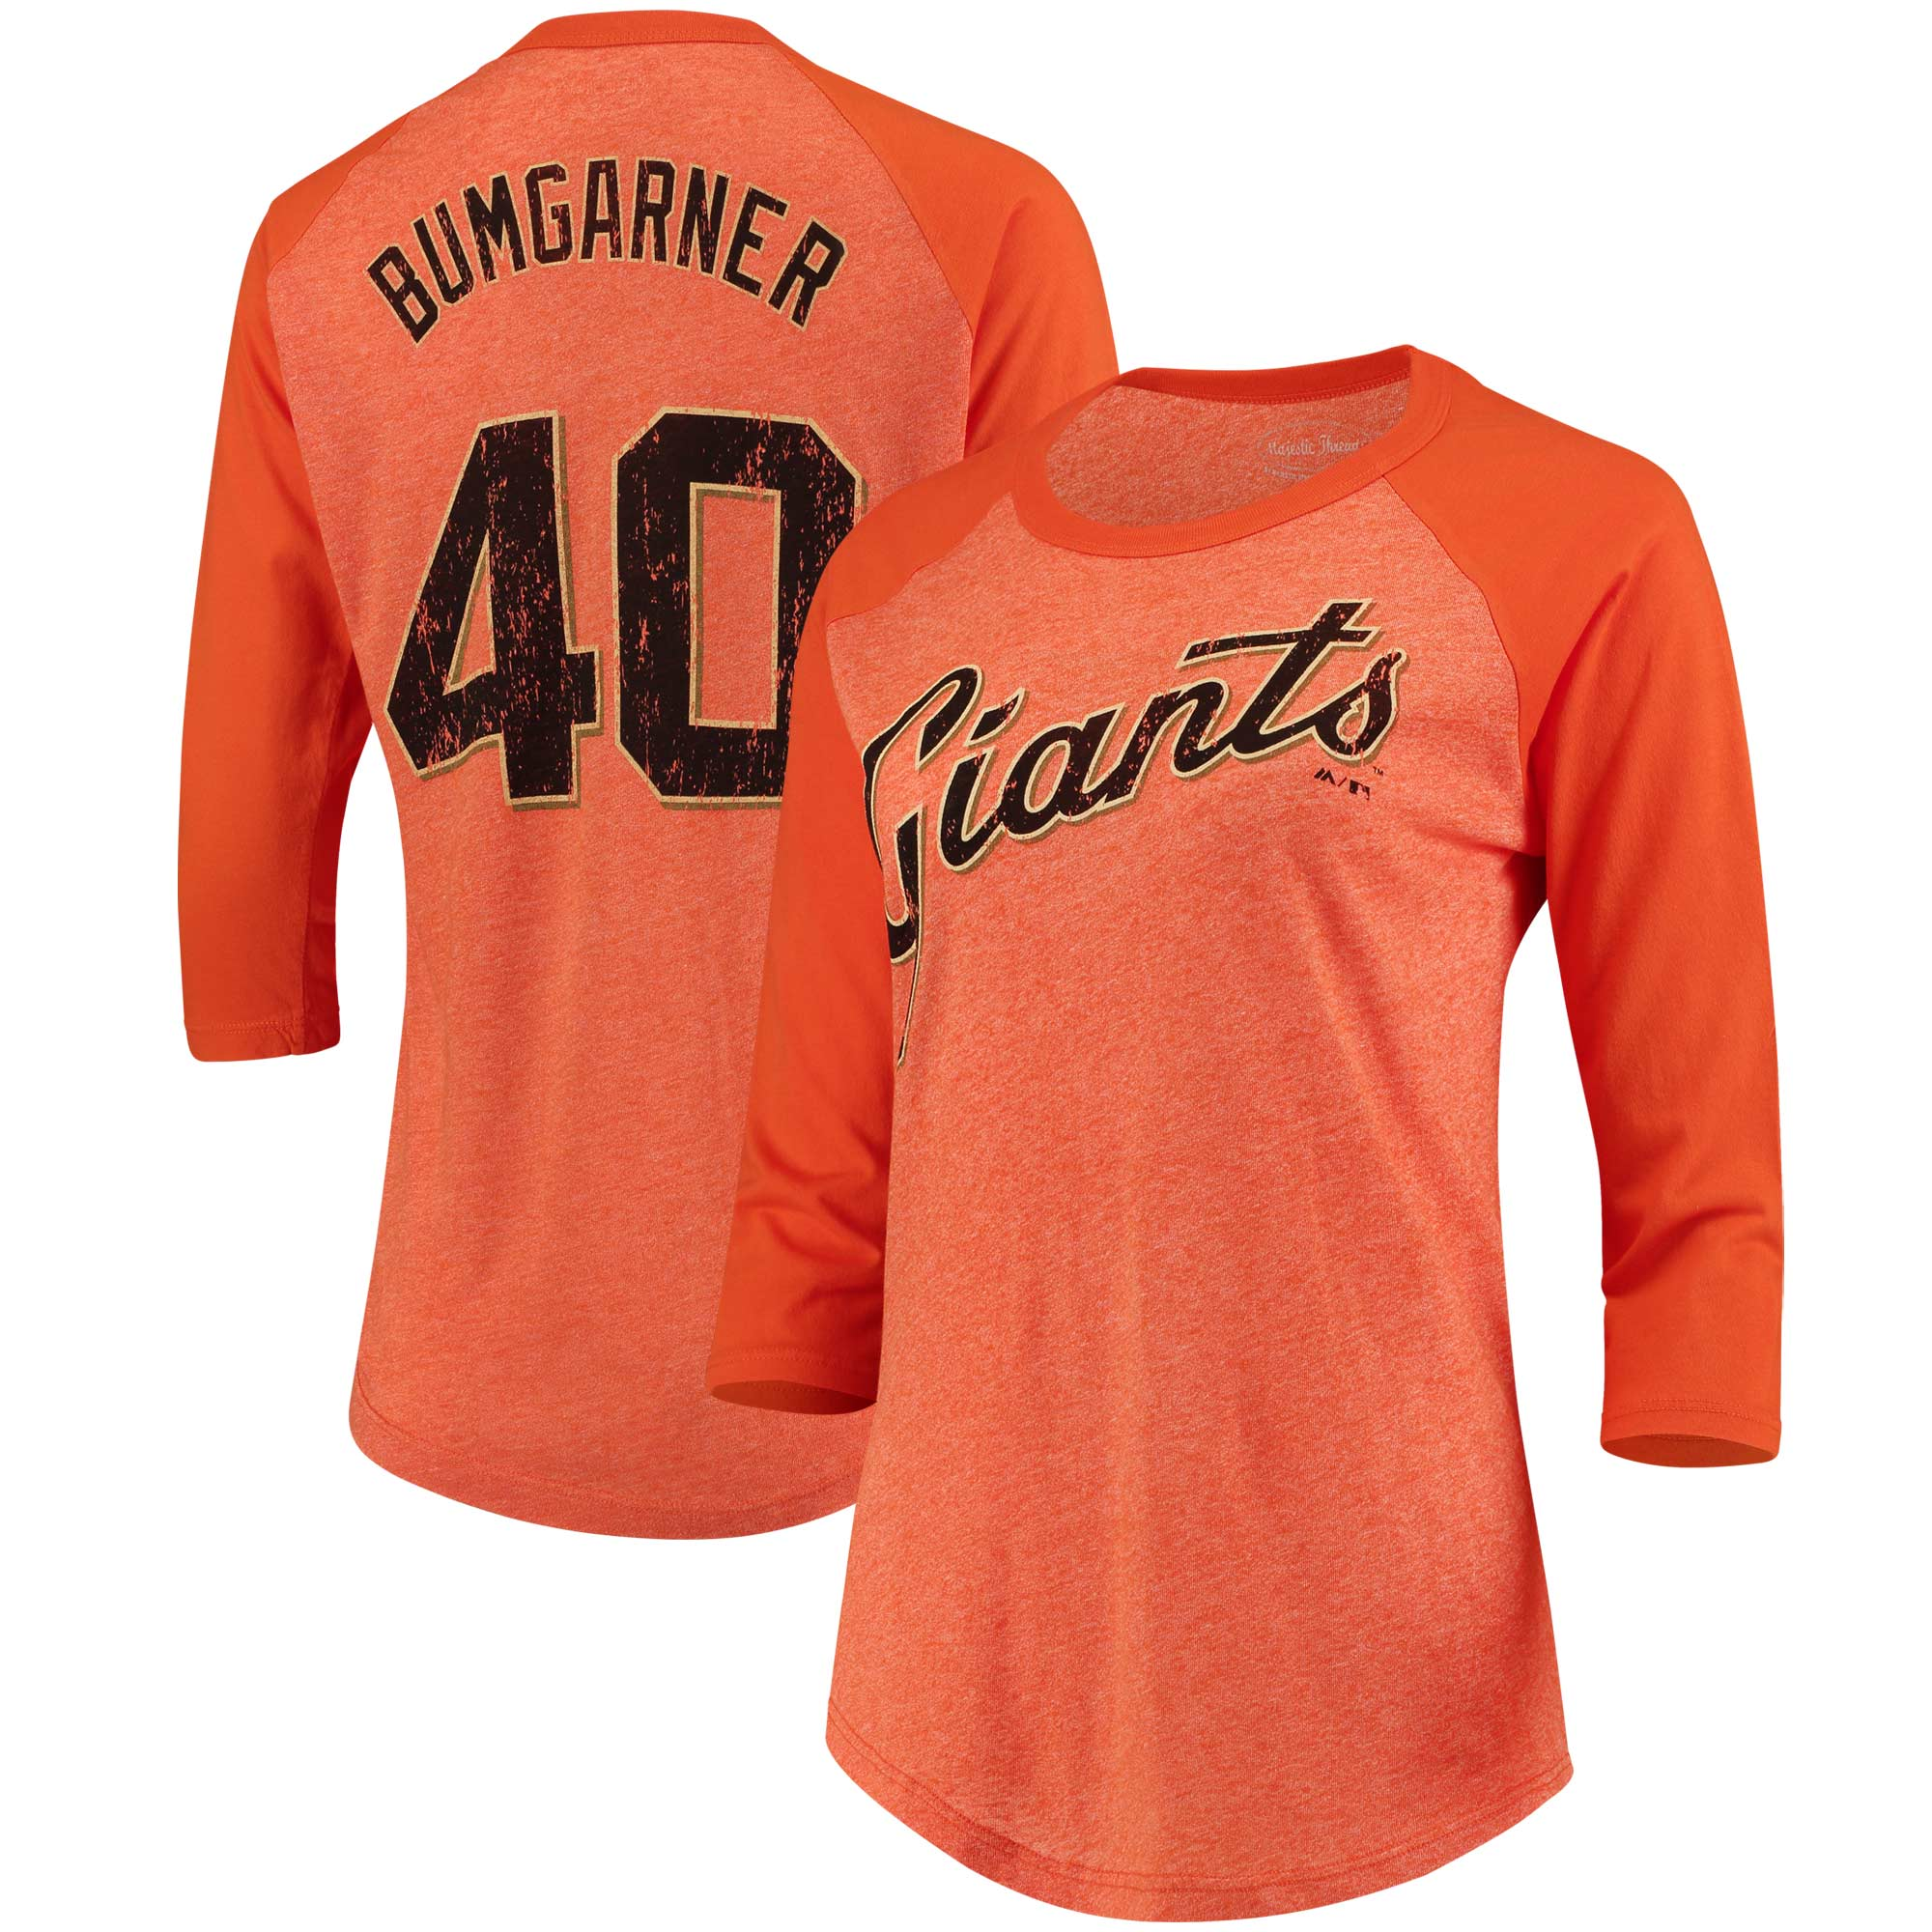 Madison Bumgarner San Francisco Giants Majestic Threads Women's Name & Number Tri-Blend Three-Quarter Length Raglan T-Shirt - Orange